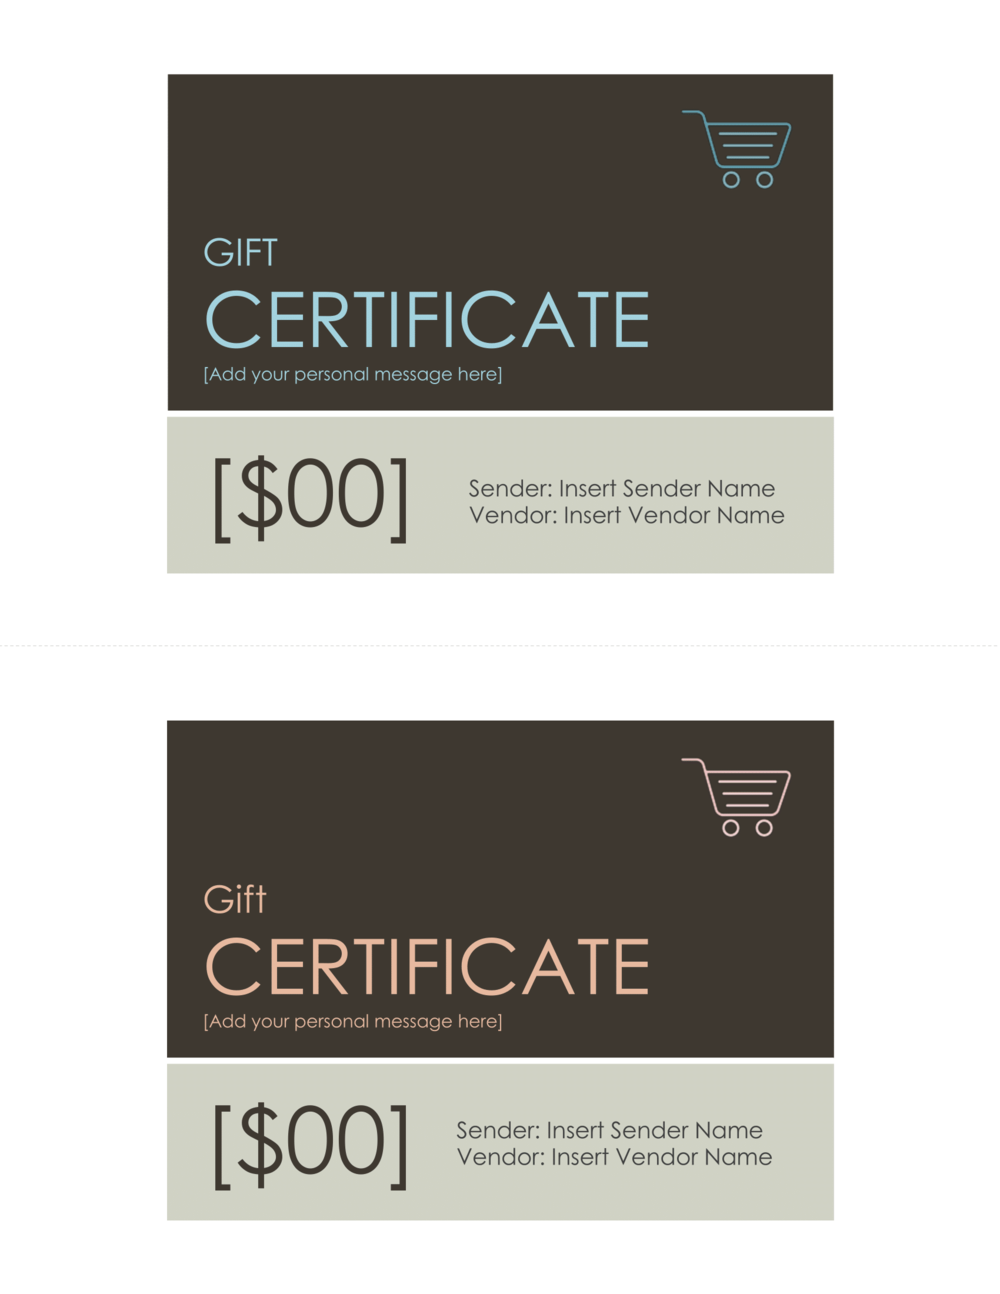 FREE Modern Peach & Aqua Gift Certificate Template — Introspec Marketing